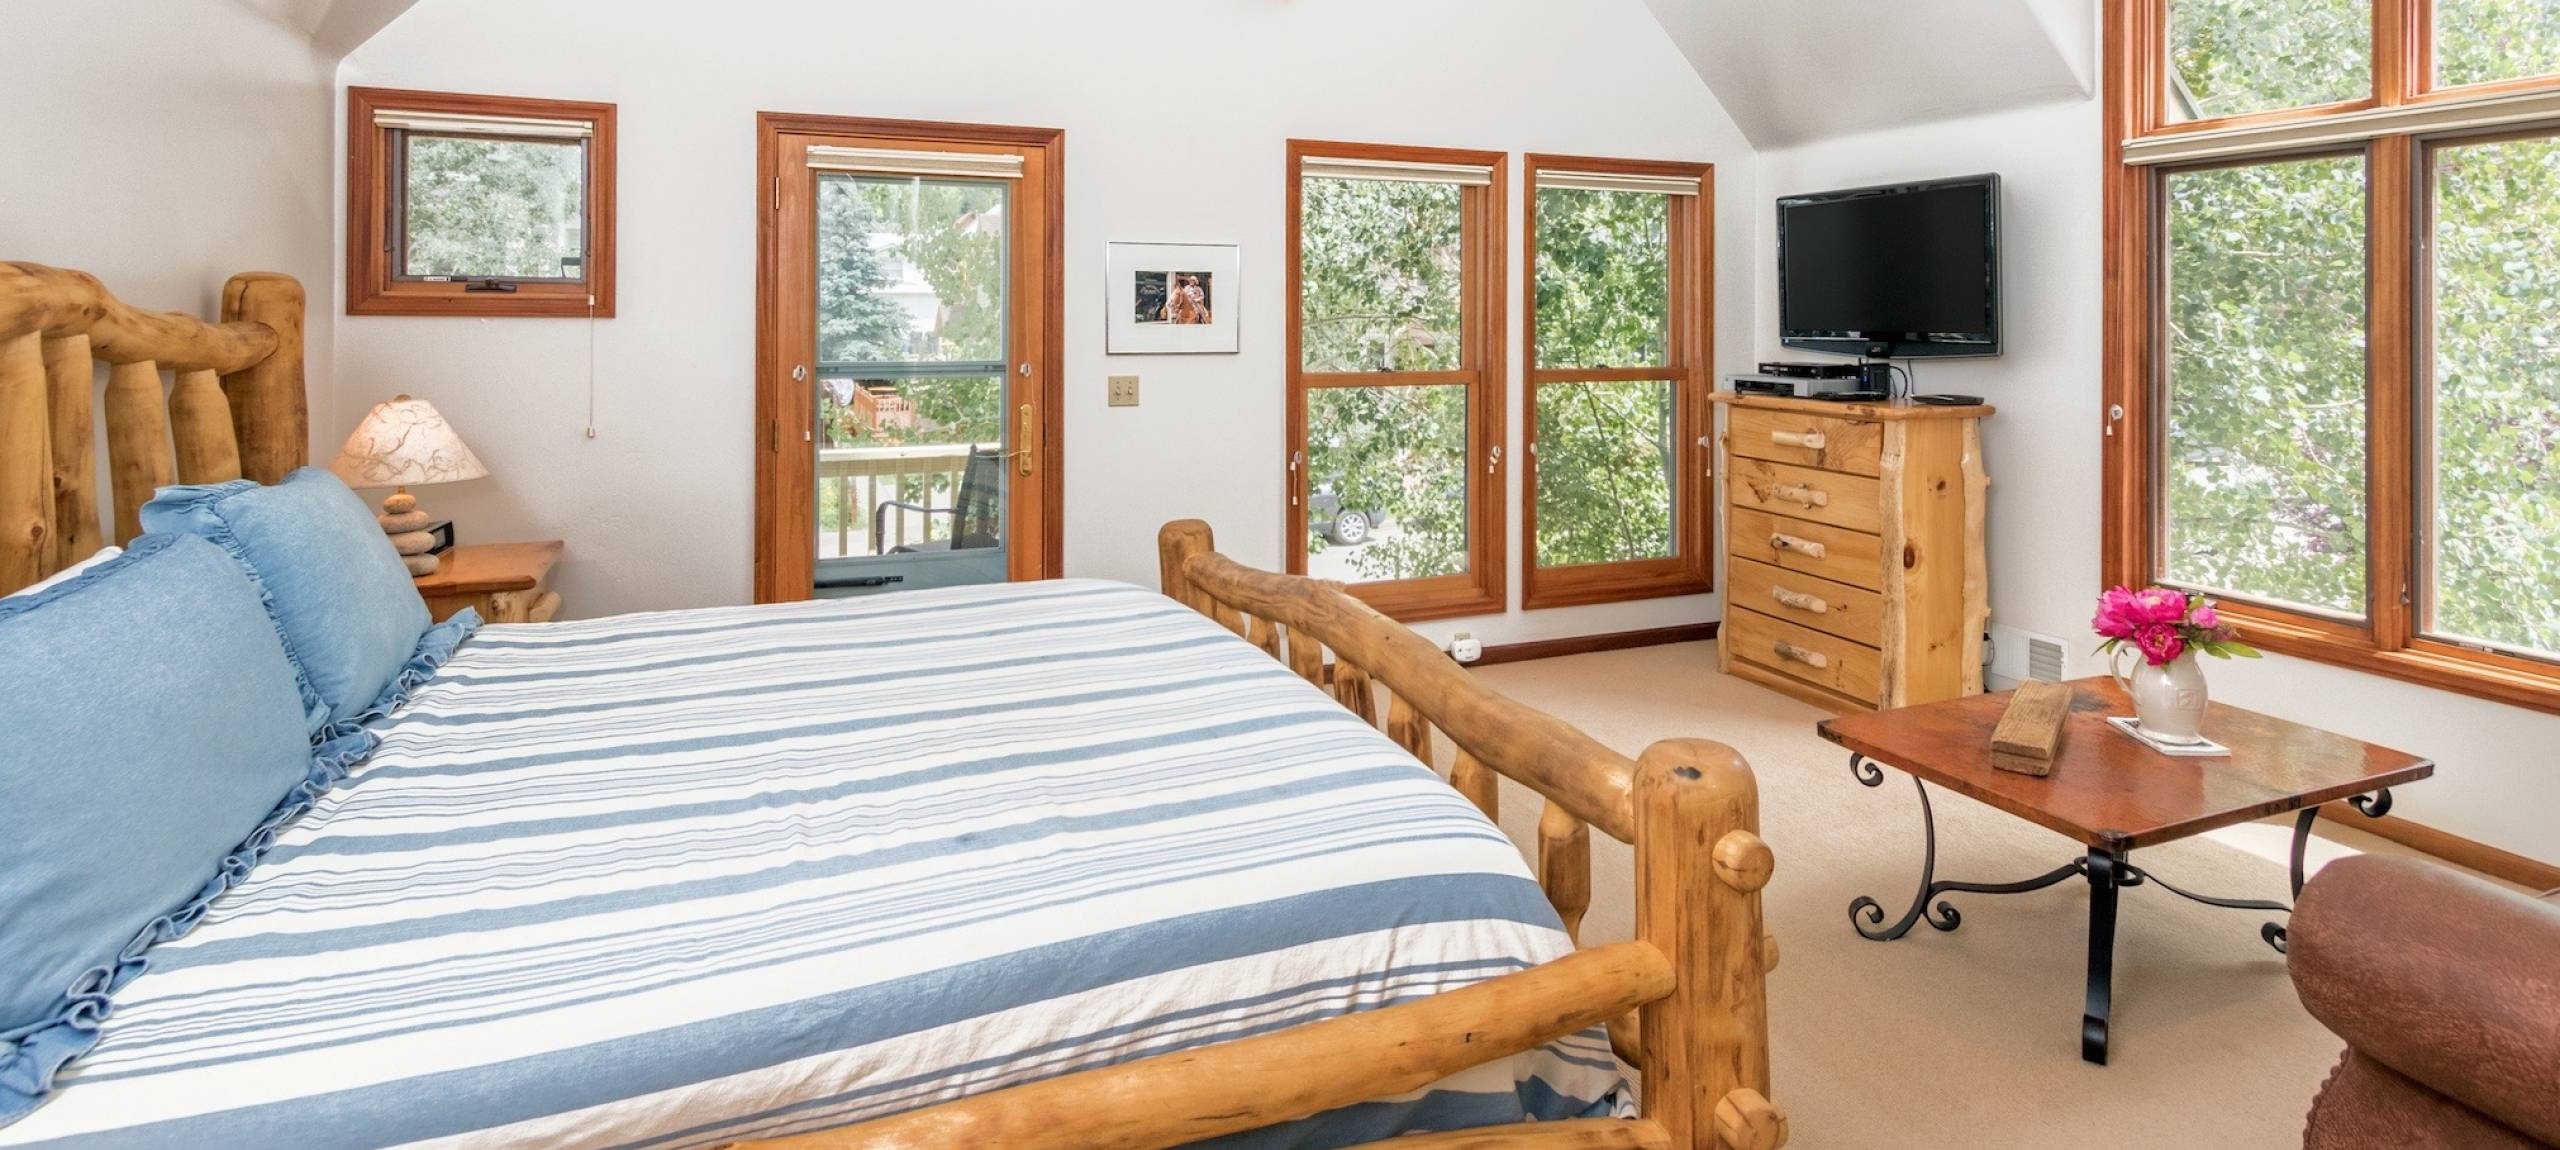 telluride-rentals-pacific-street-townhouse-master-bedroom